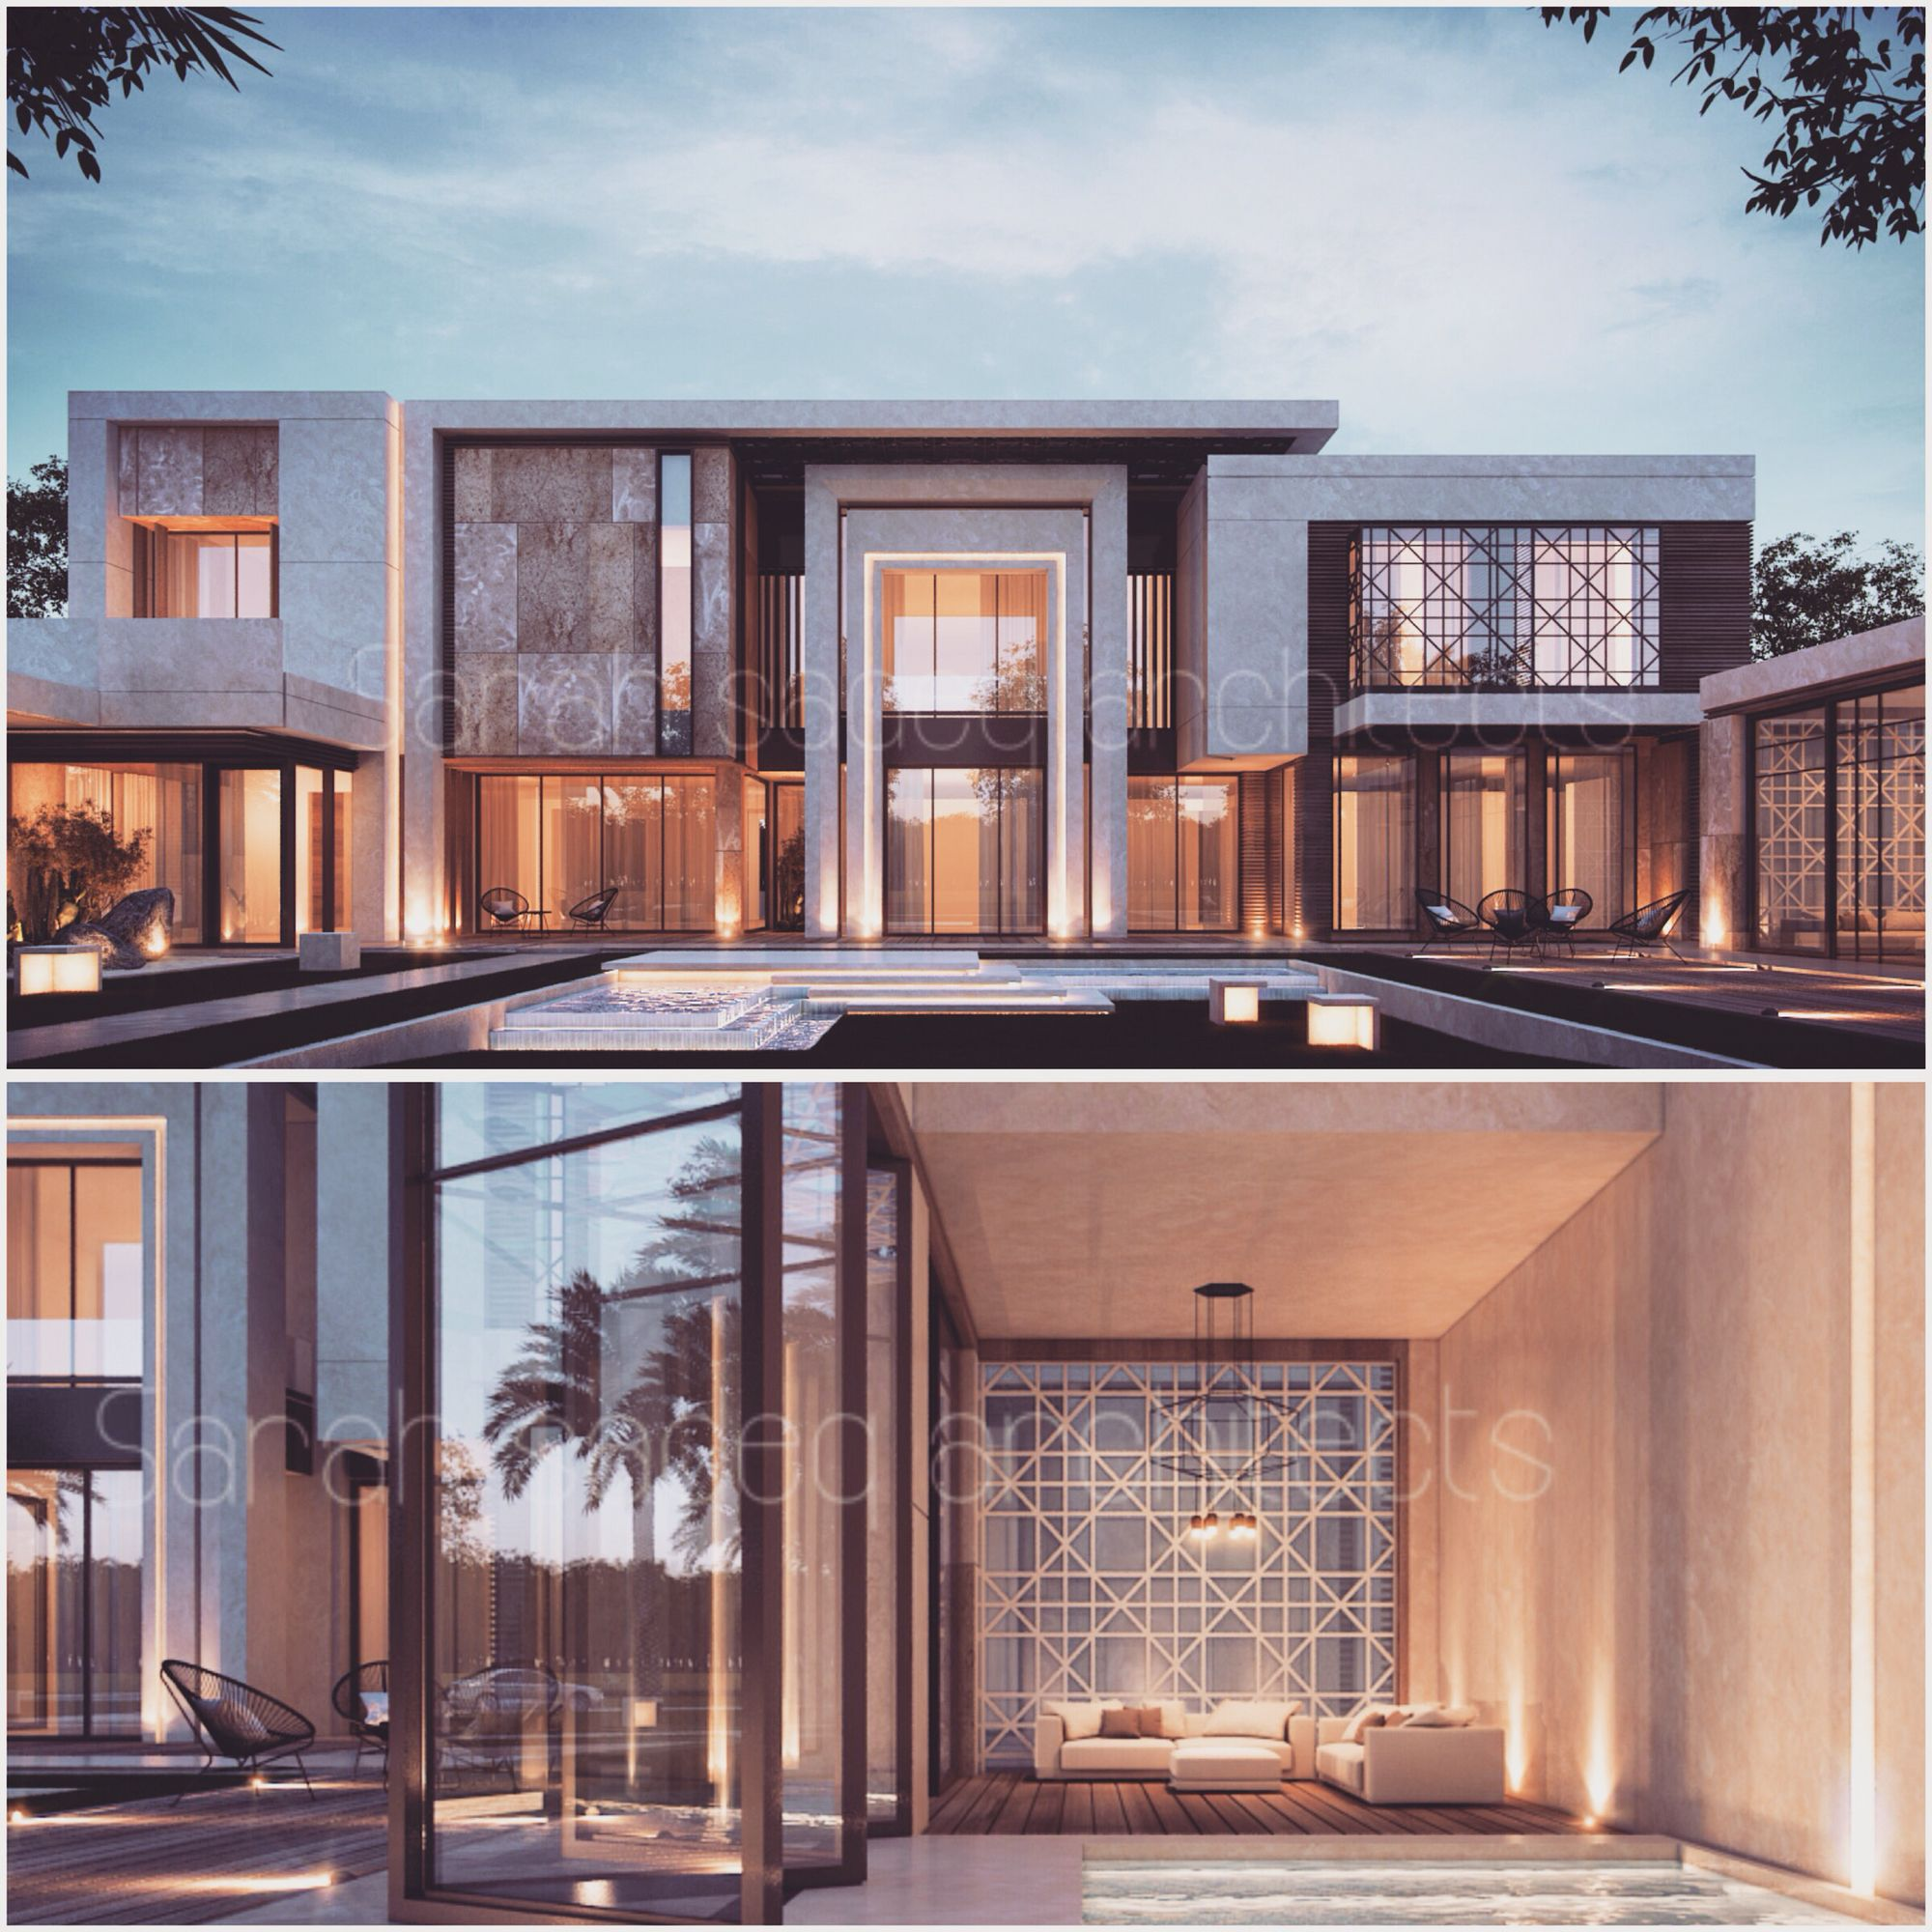 2000 m private villa kuwait , sarah sadeq architects | sarah sadeq ...